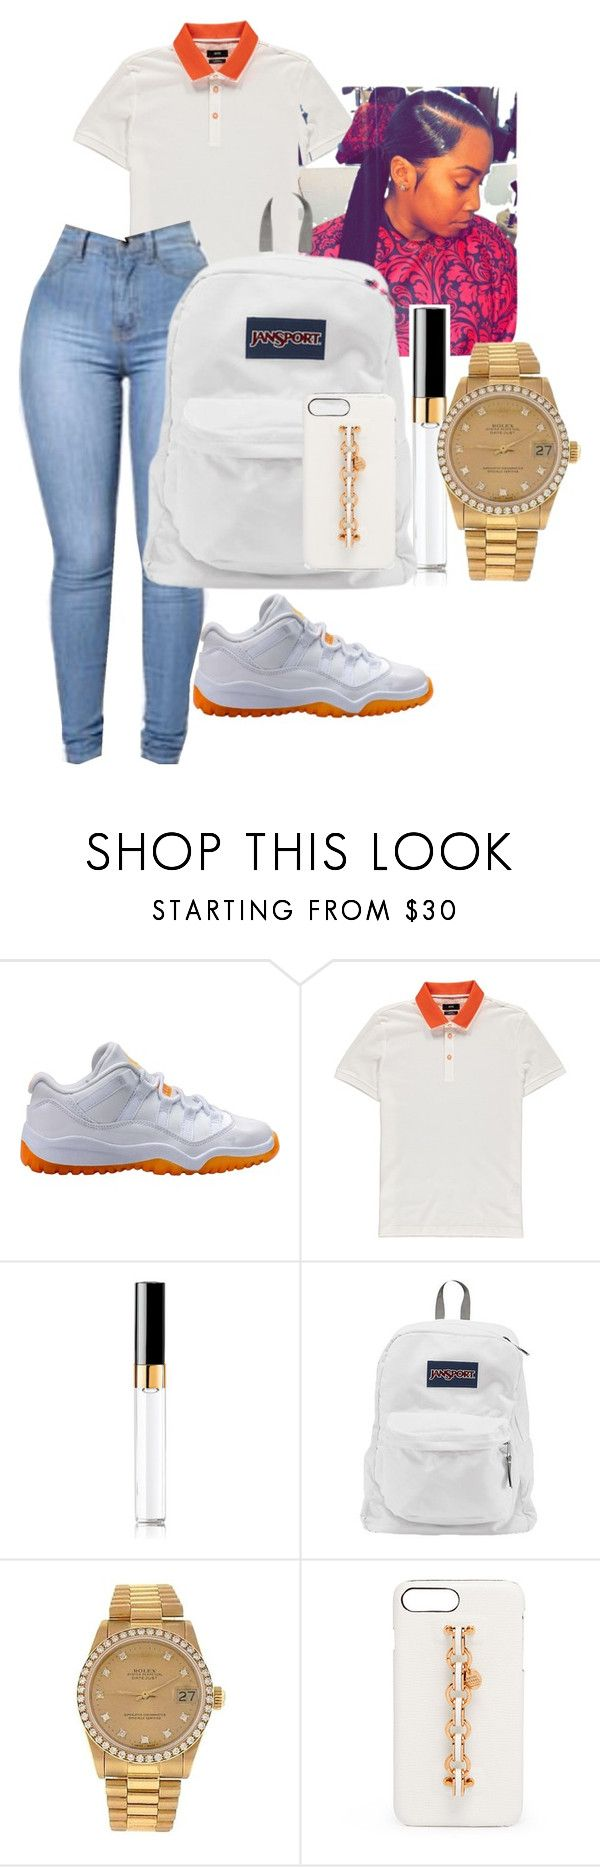 """Jordan Outfit"" by benginafantaisie on Polyvore featuring NIKE, BOSS Orange, Chanel, JanSport, Rolex, Henri Bendel, nike, jansport, jordan and JORDAN11"